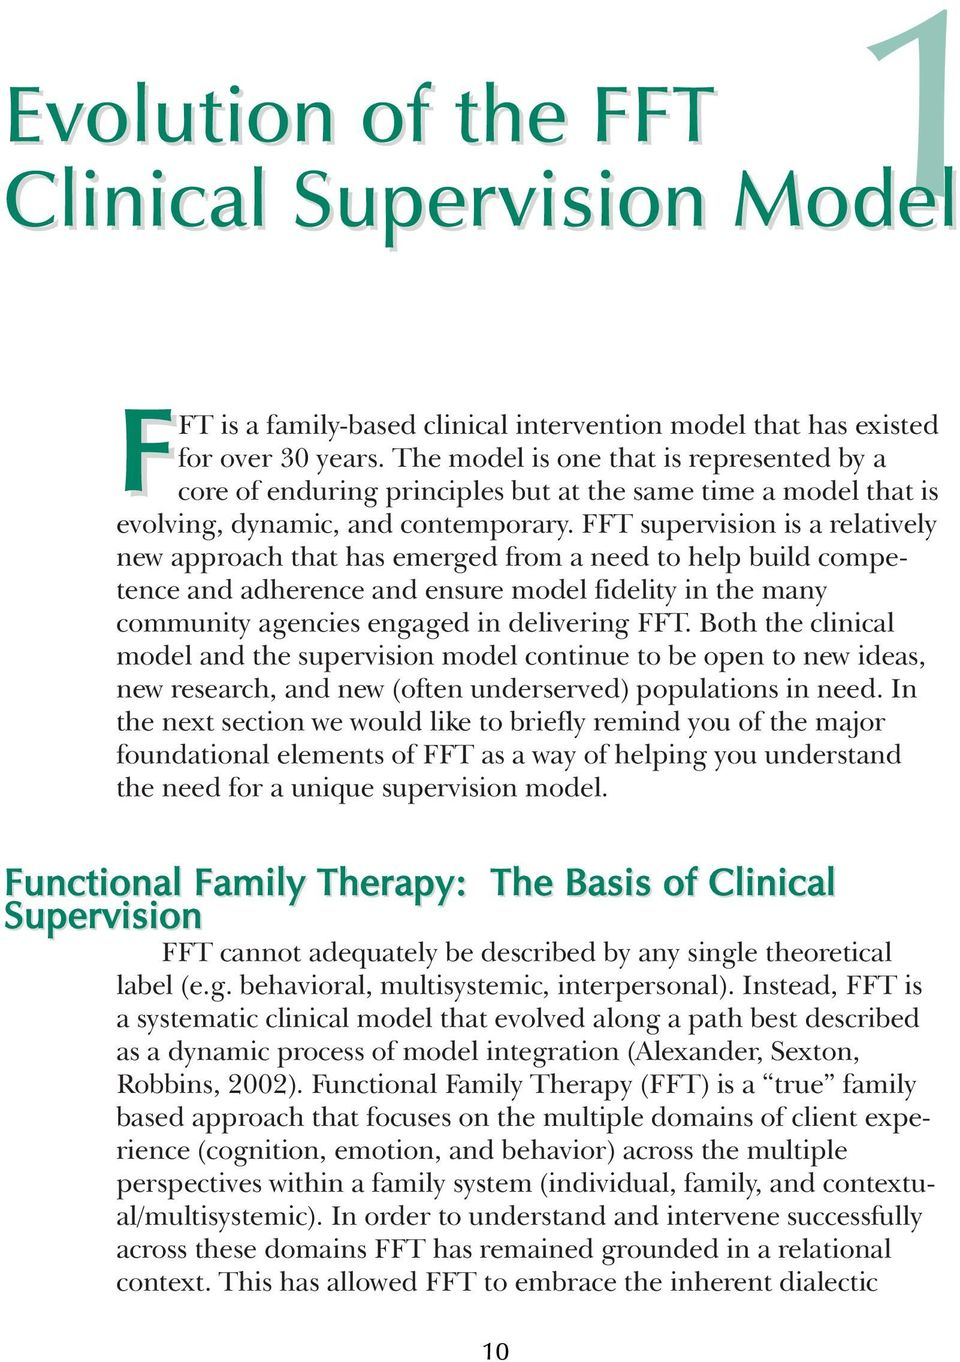 FFT supervision is a relatively new approach that has emerged from a need to help build competence and adherence and ensure model fidelity in the many community agencies engaged in delivering FFT.